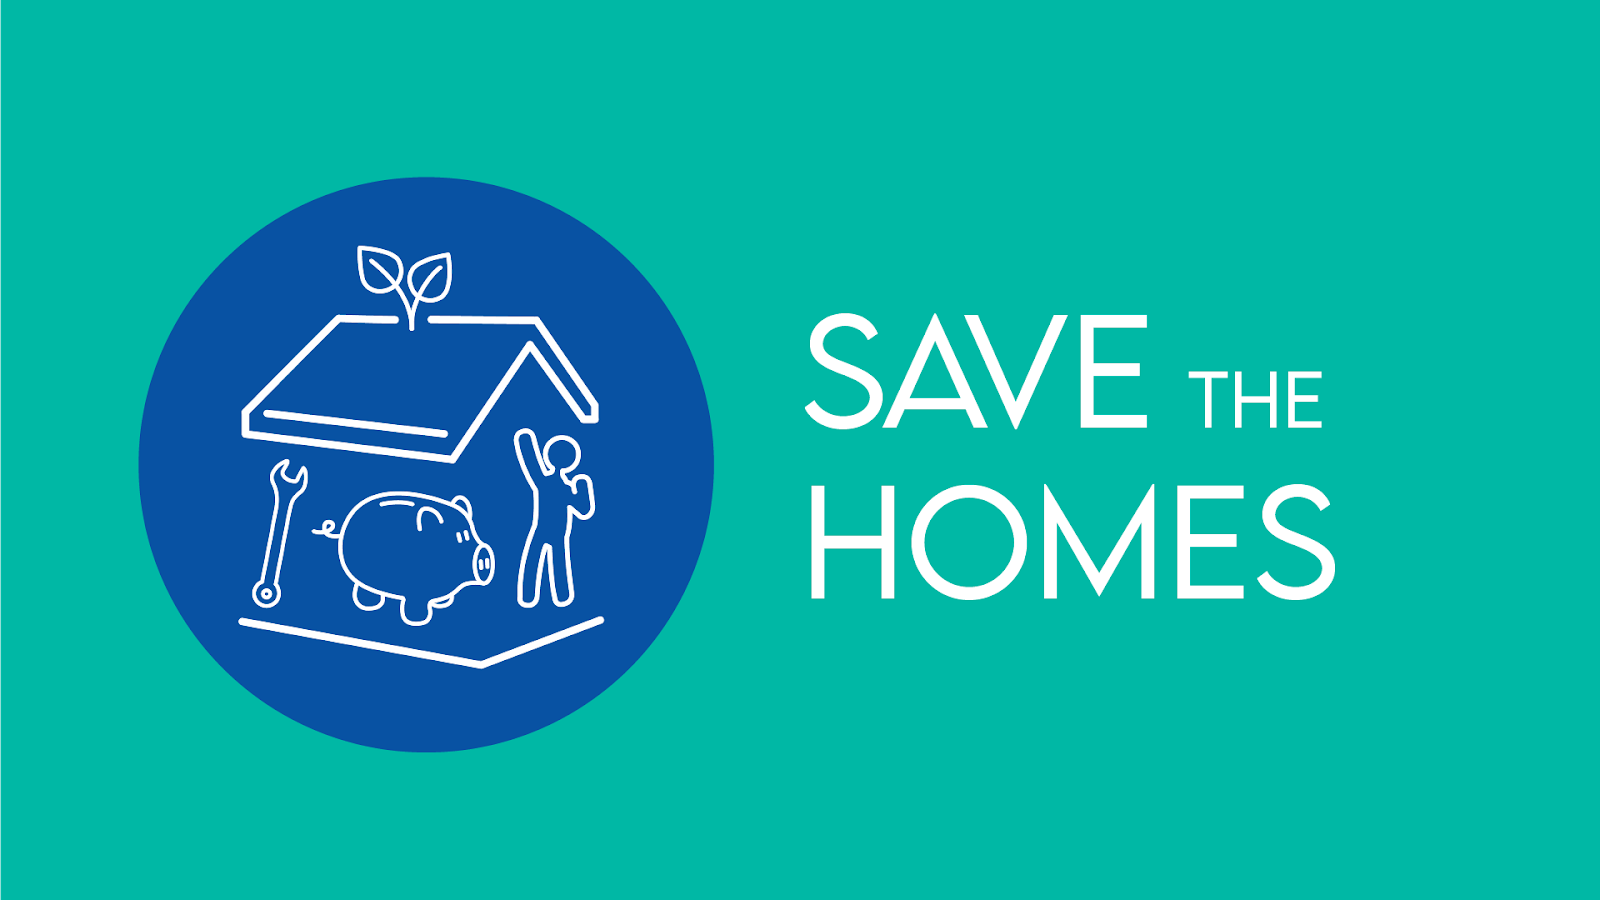 Save the Homes